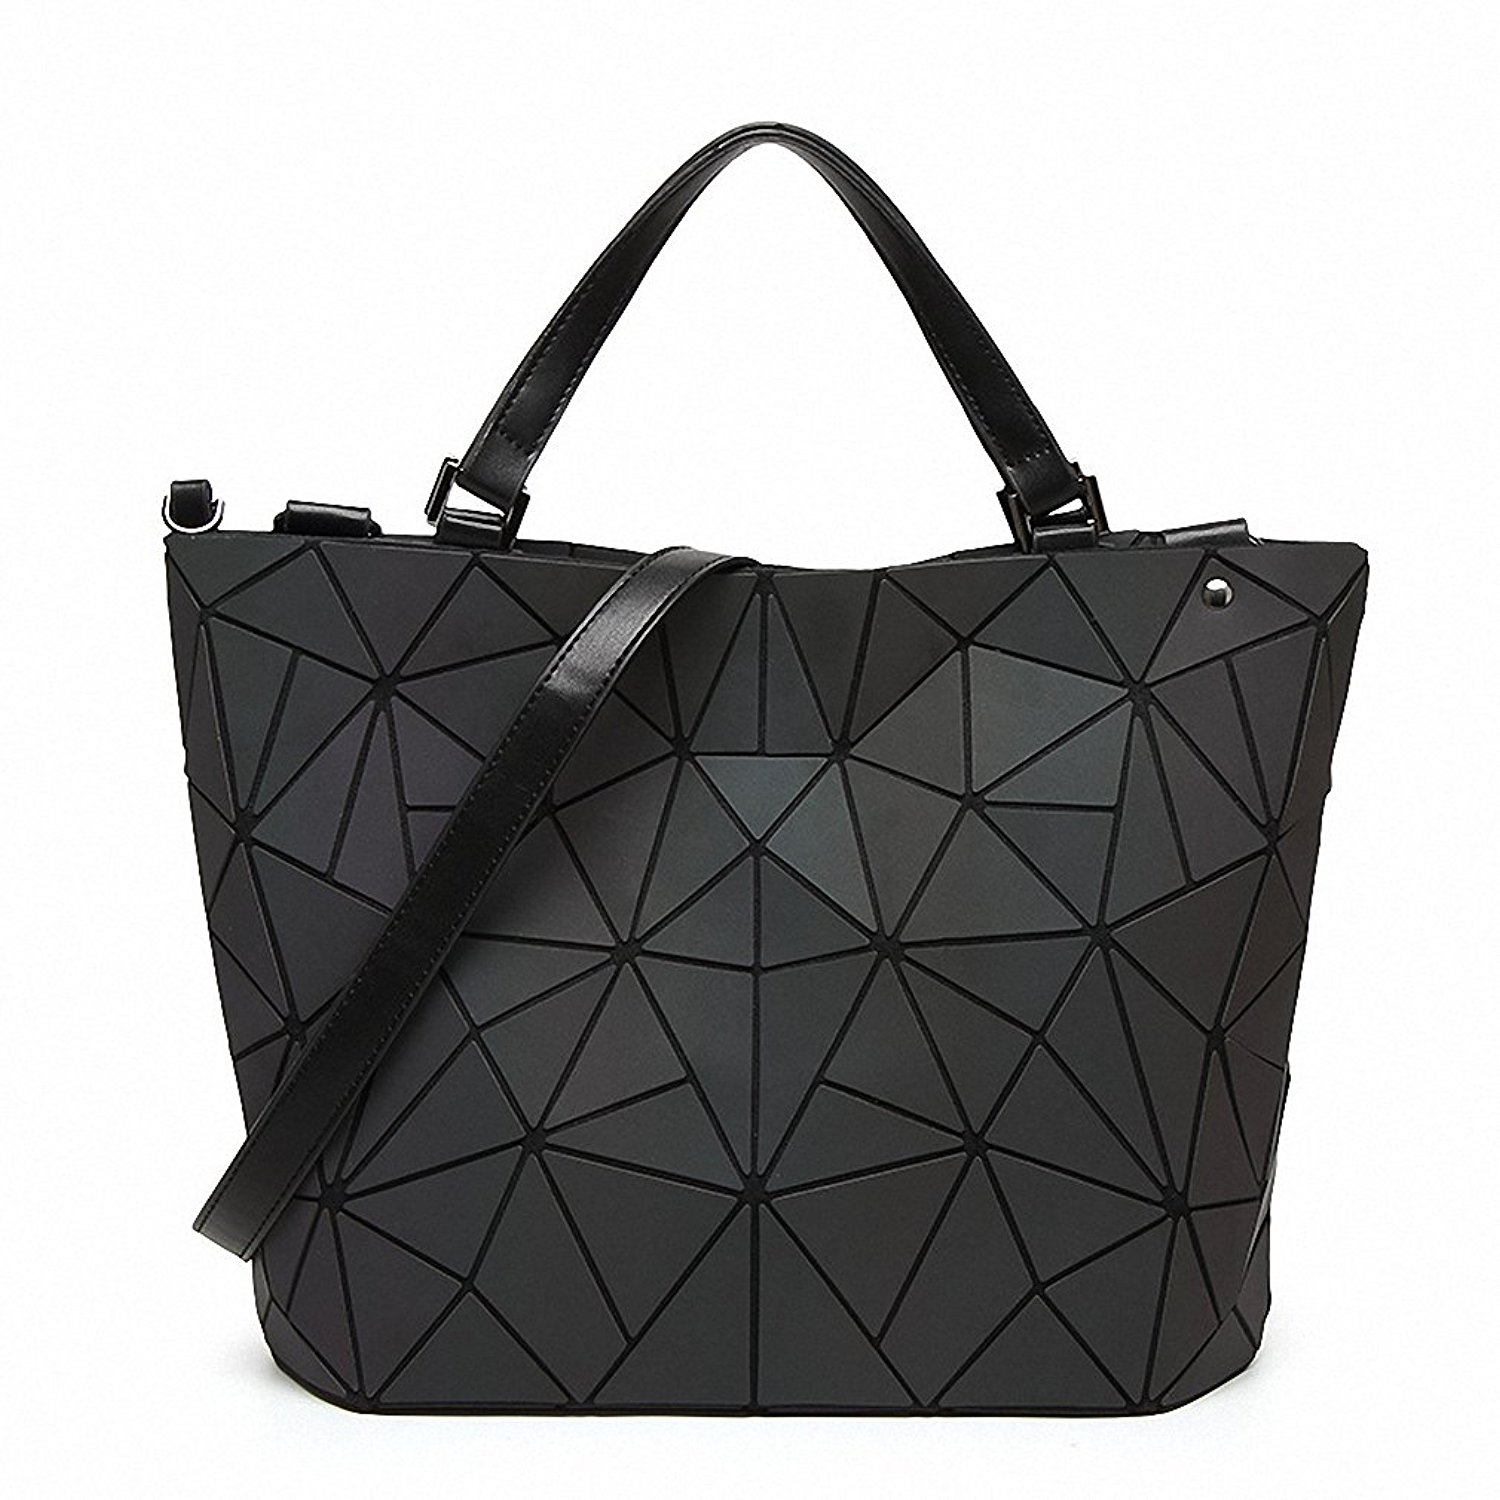 30d804bdc629 Get Quotations · New Bao Bao bag Women Luminous sac baobao Bag Diamond Tote  Geometry Quilted Shoulder Bags Laser